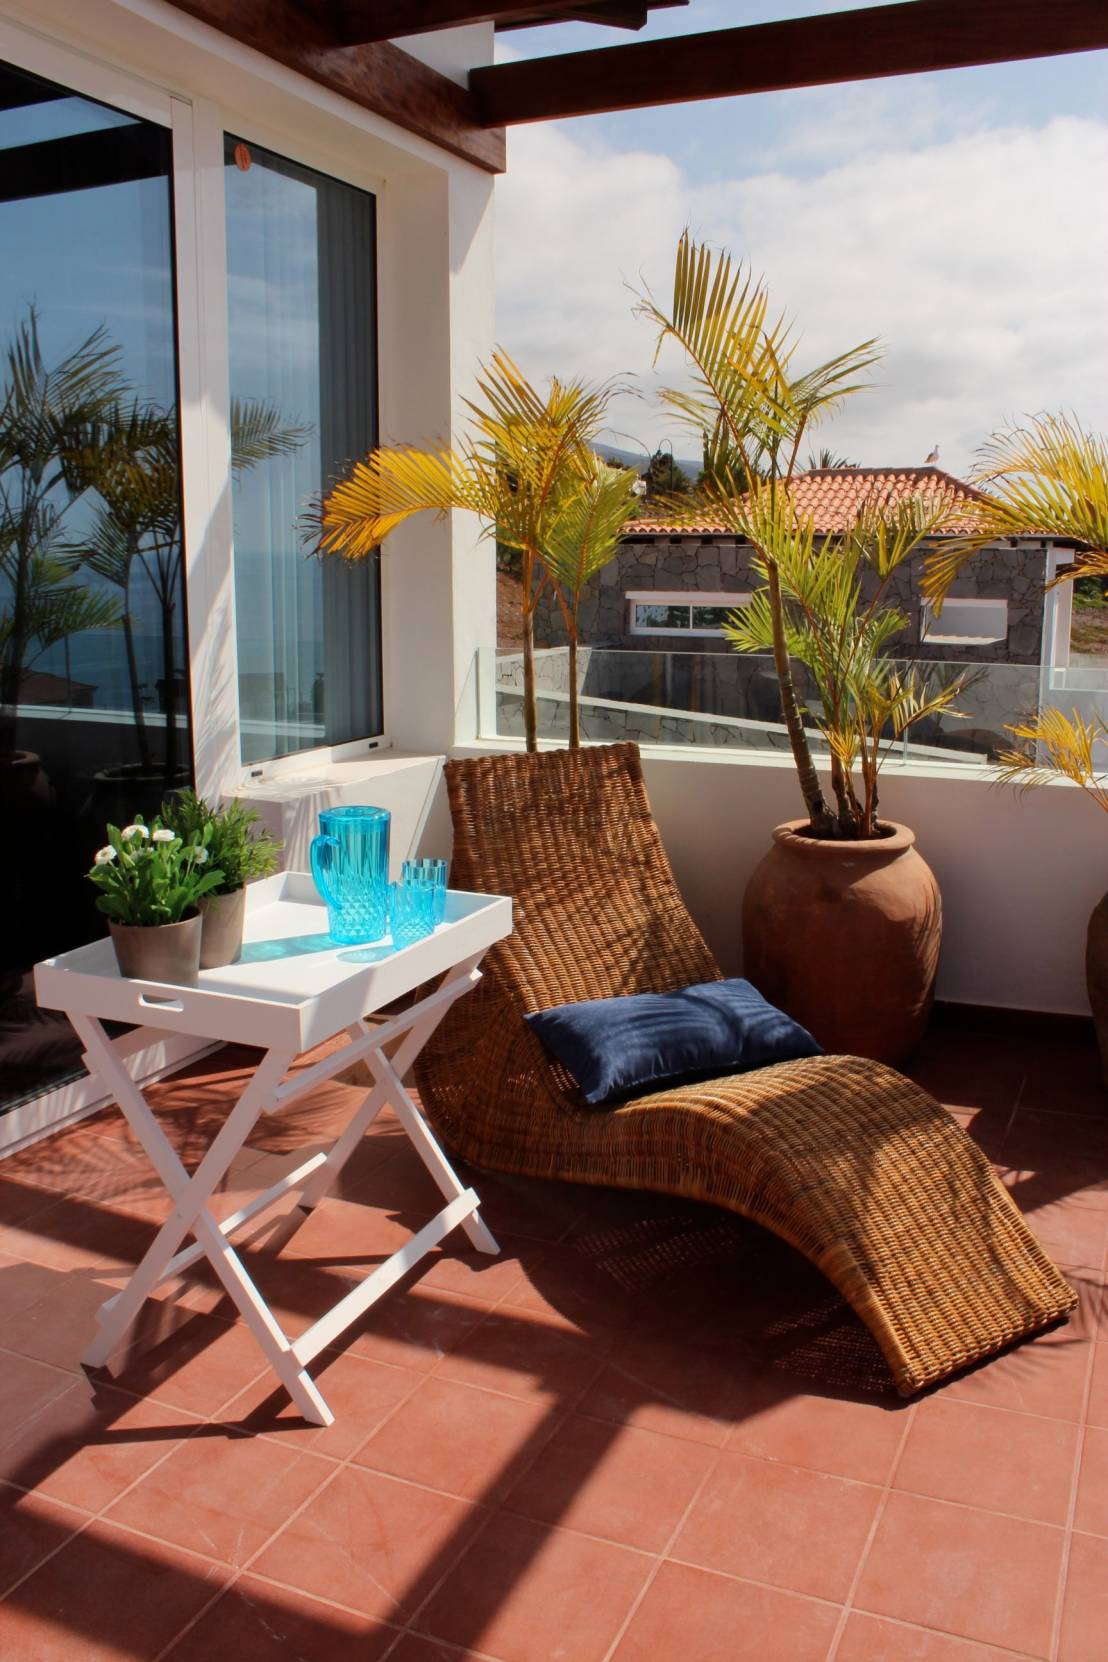 7 grandes ideas para balcones y terrazas peque as - Decoracion de patios pequenos exteriores ...